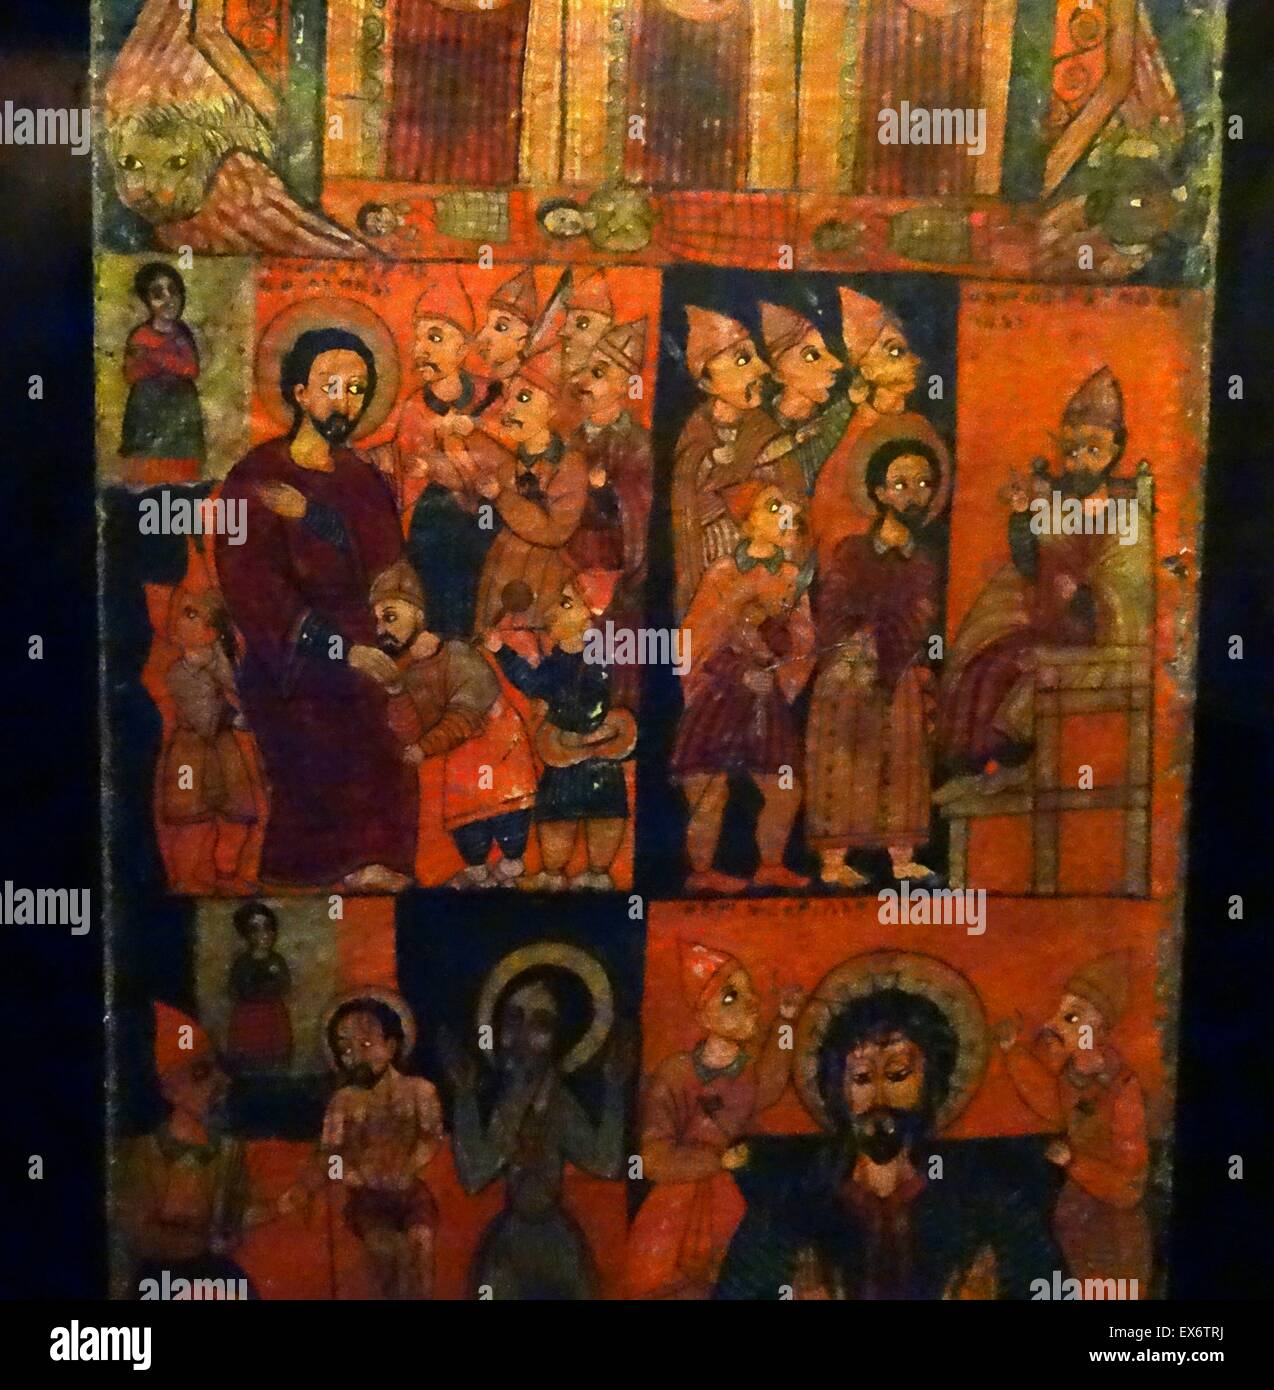 The Passion of the Christ. Christian painting. From the diptych of the church of Qaha Iyasus. From Ethiopia. - Stock Image